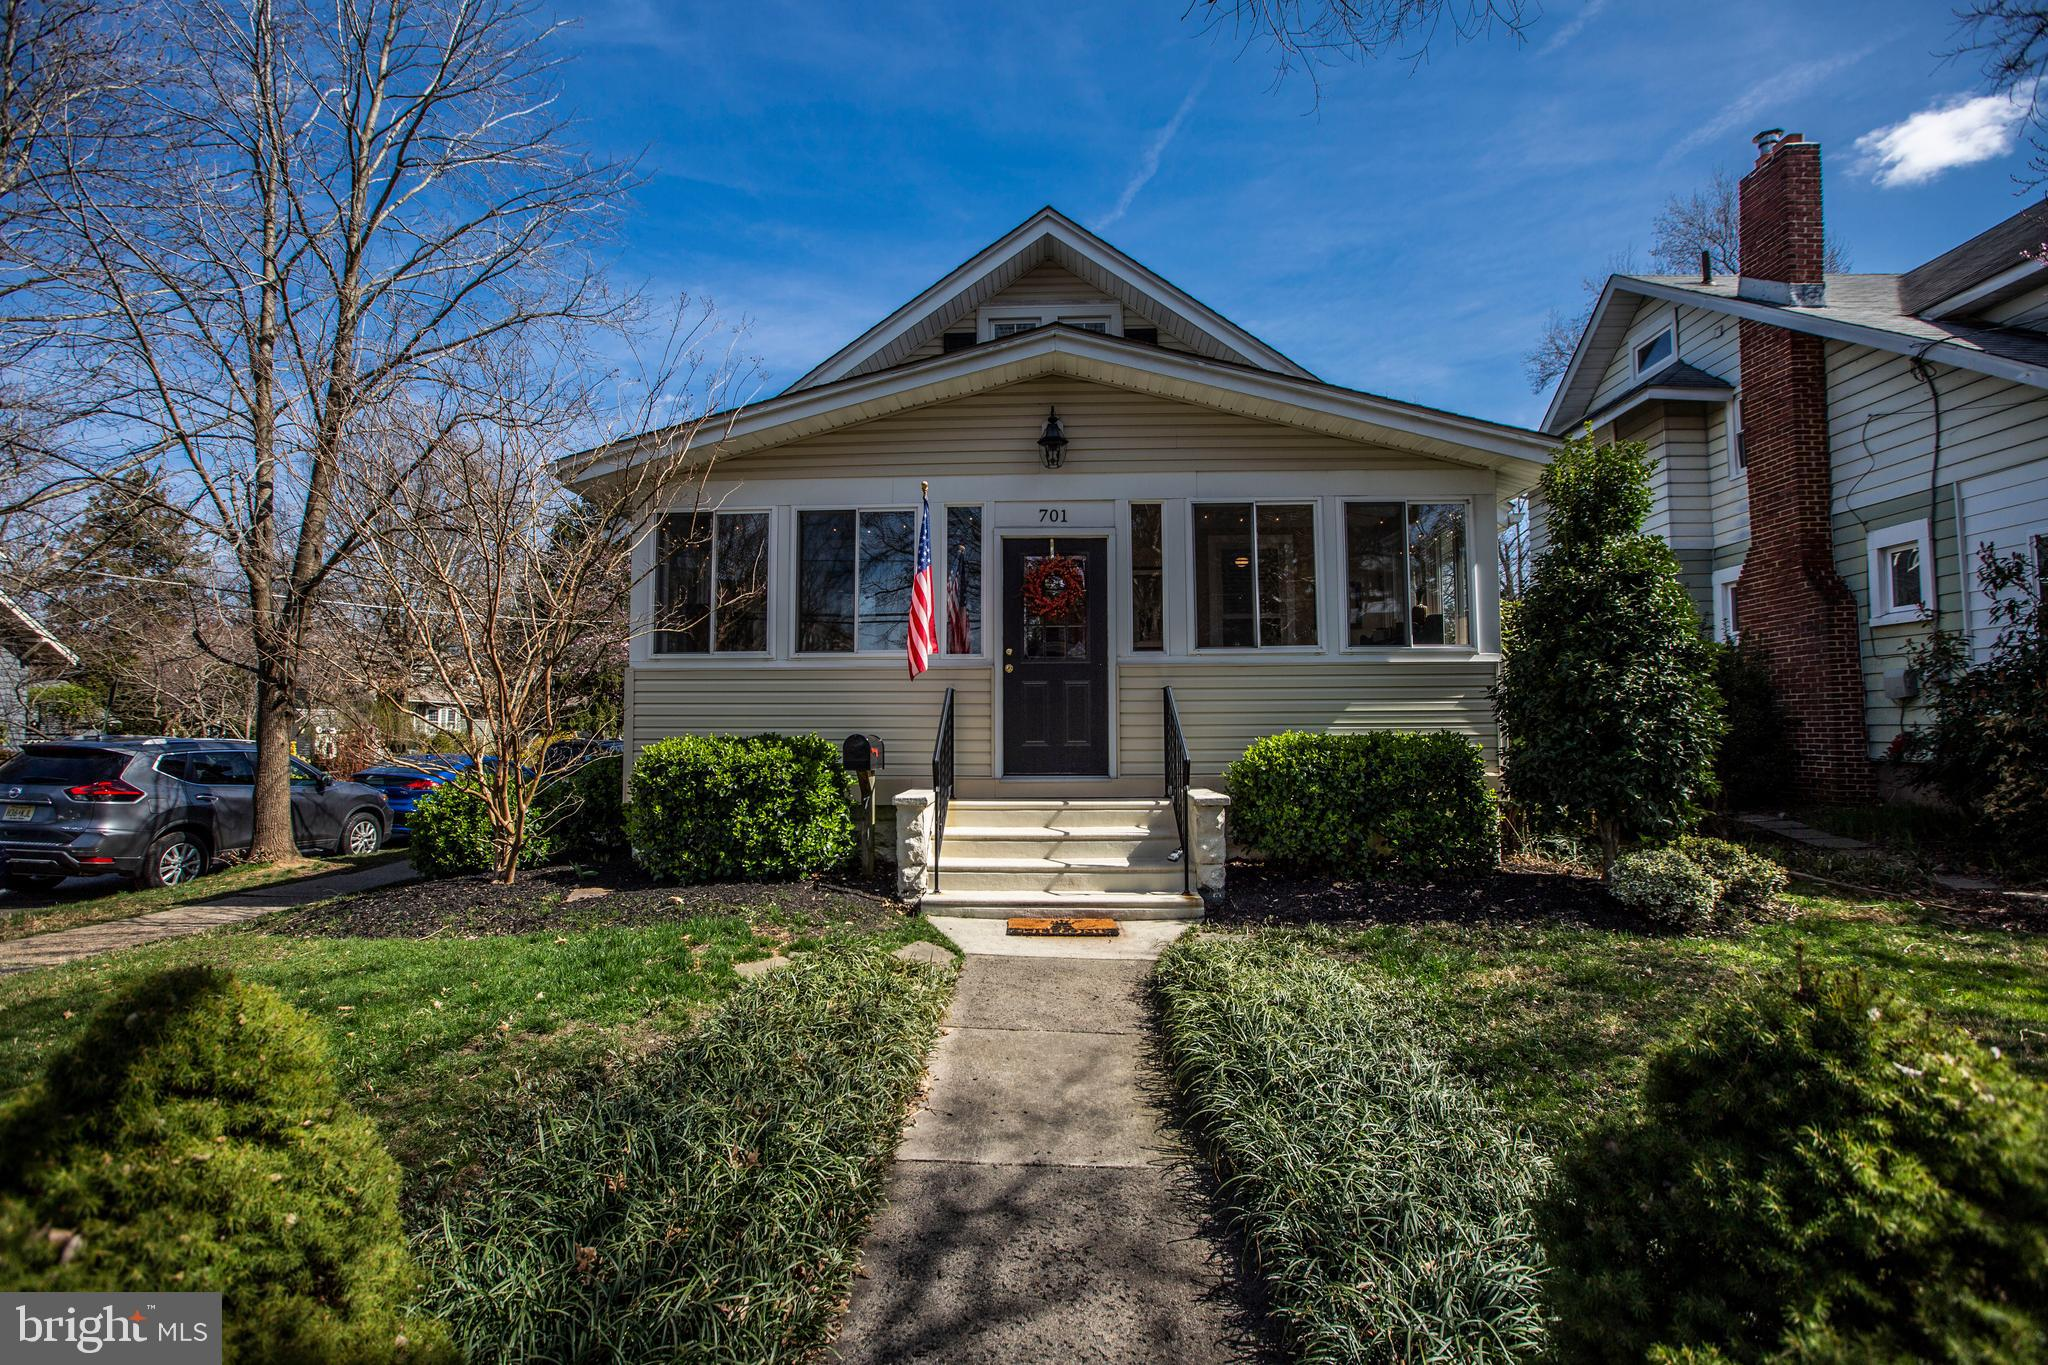 701 COLFORD AVENUE, COLLINGSWOOD, NJ 08108